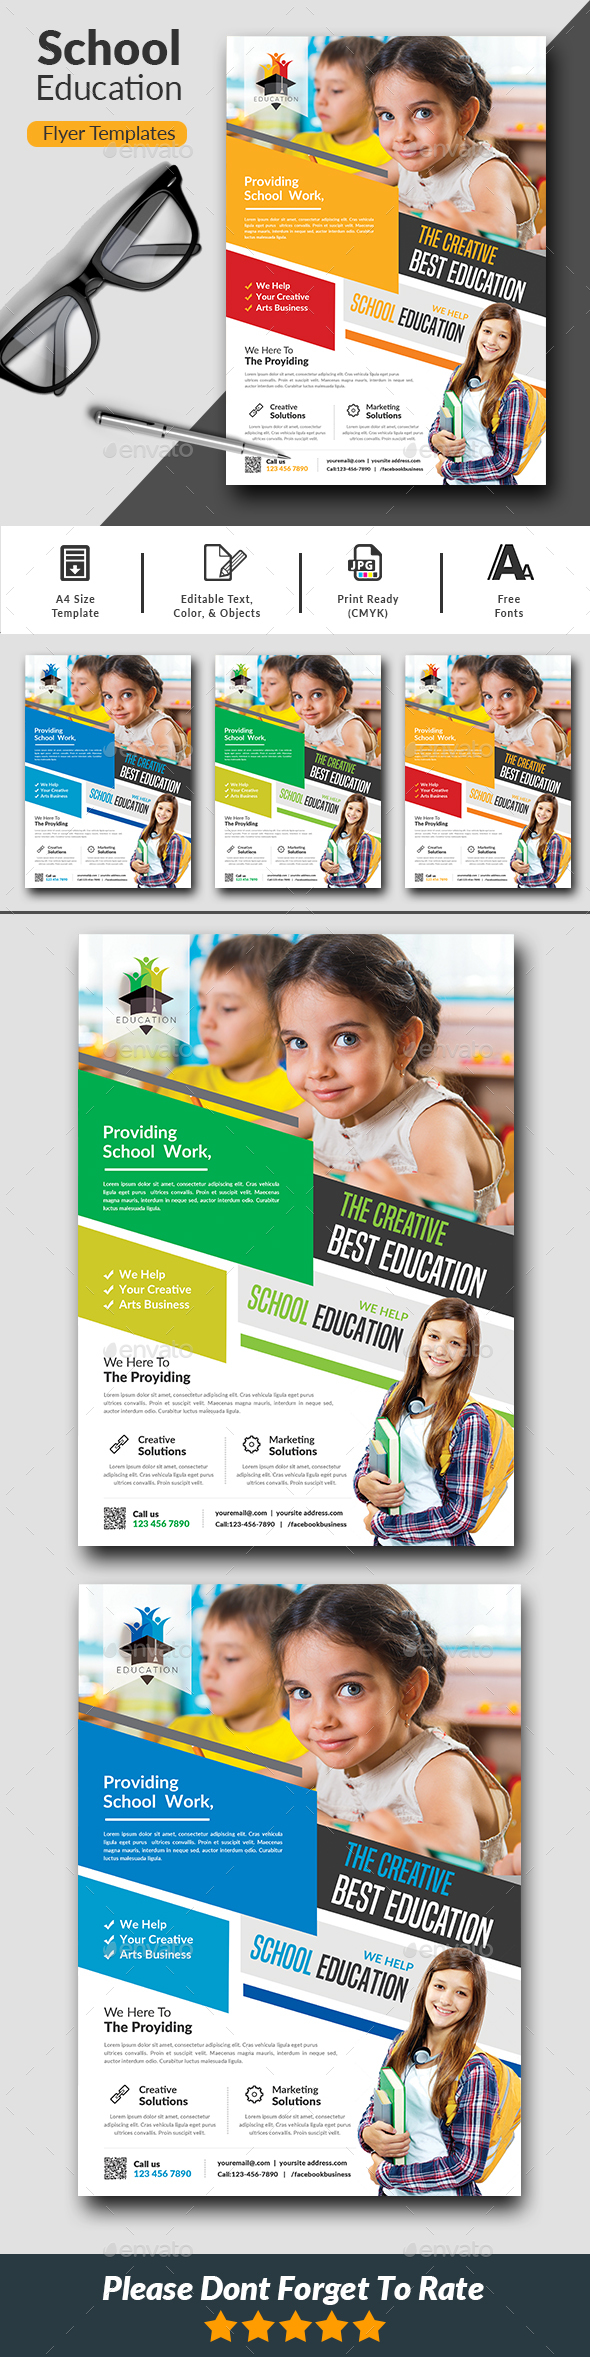 GraphicRiver School Education Flyer Templates 20839491